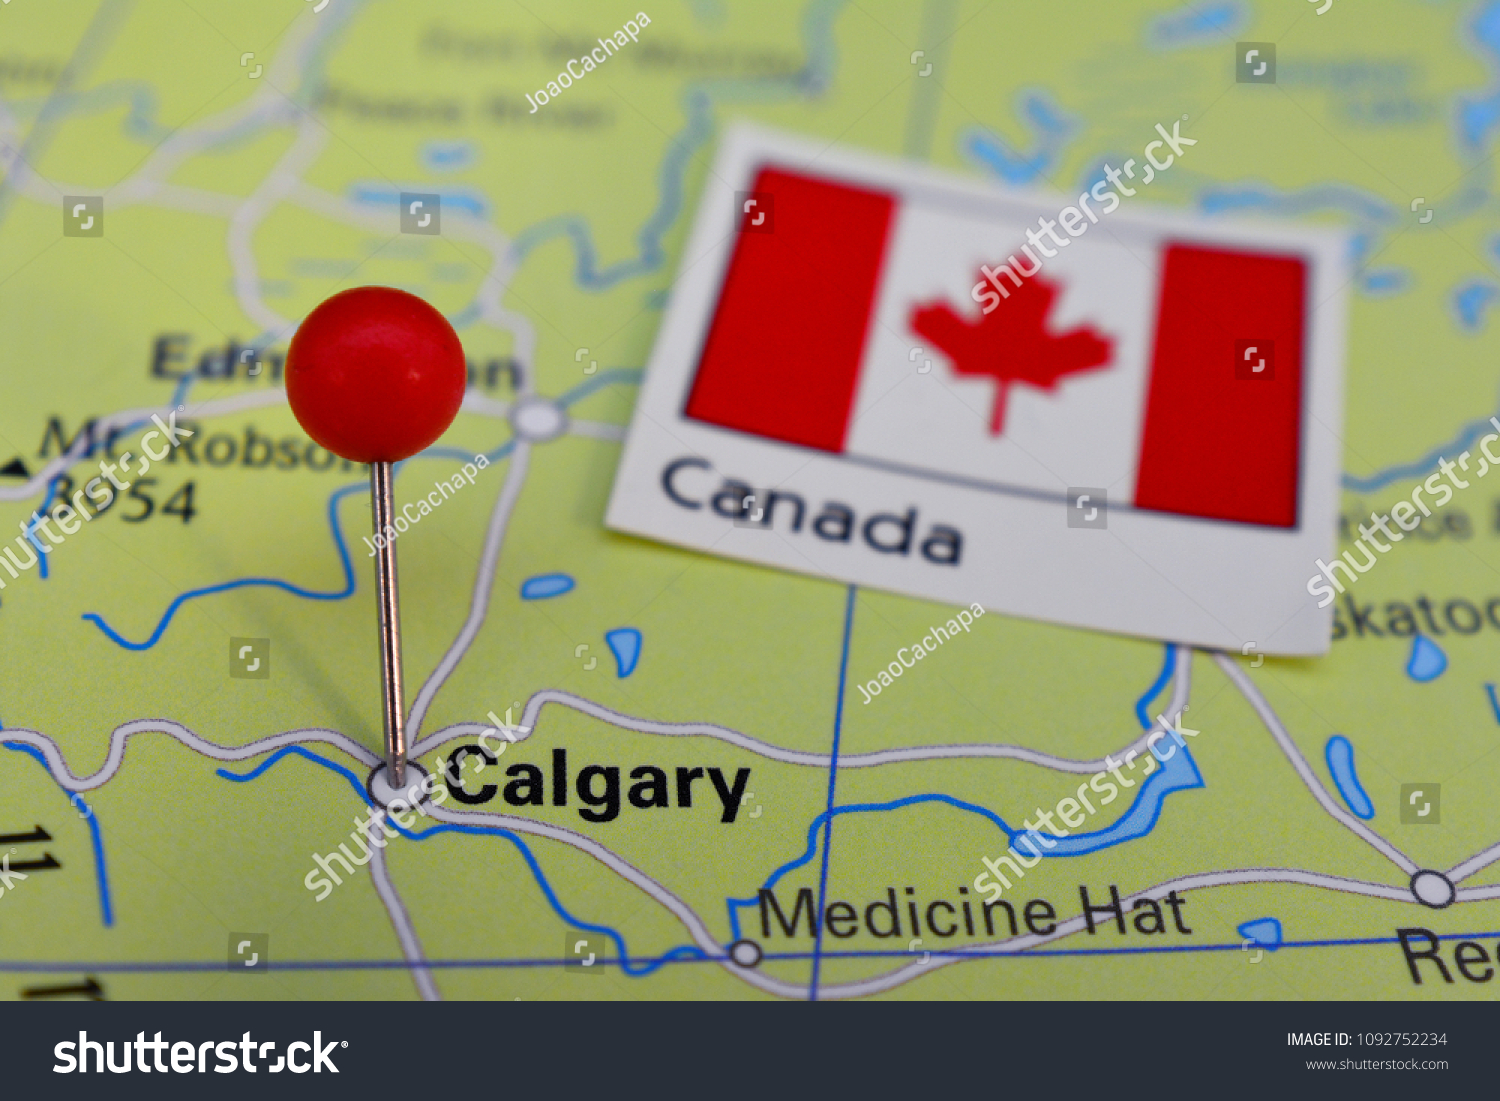 Pin Marked City Calgary On Map Stock Photo Edit Now 1092752234